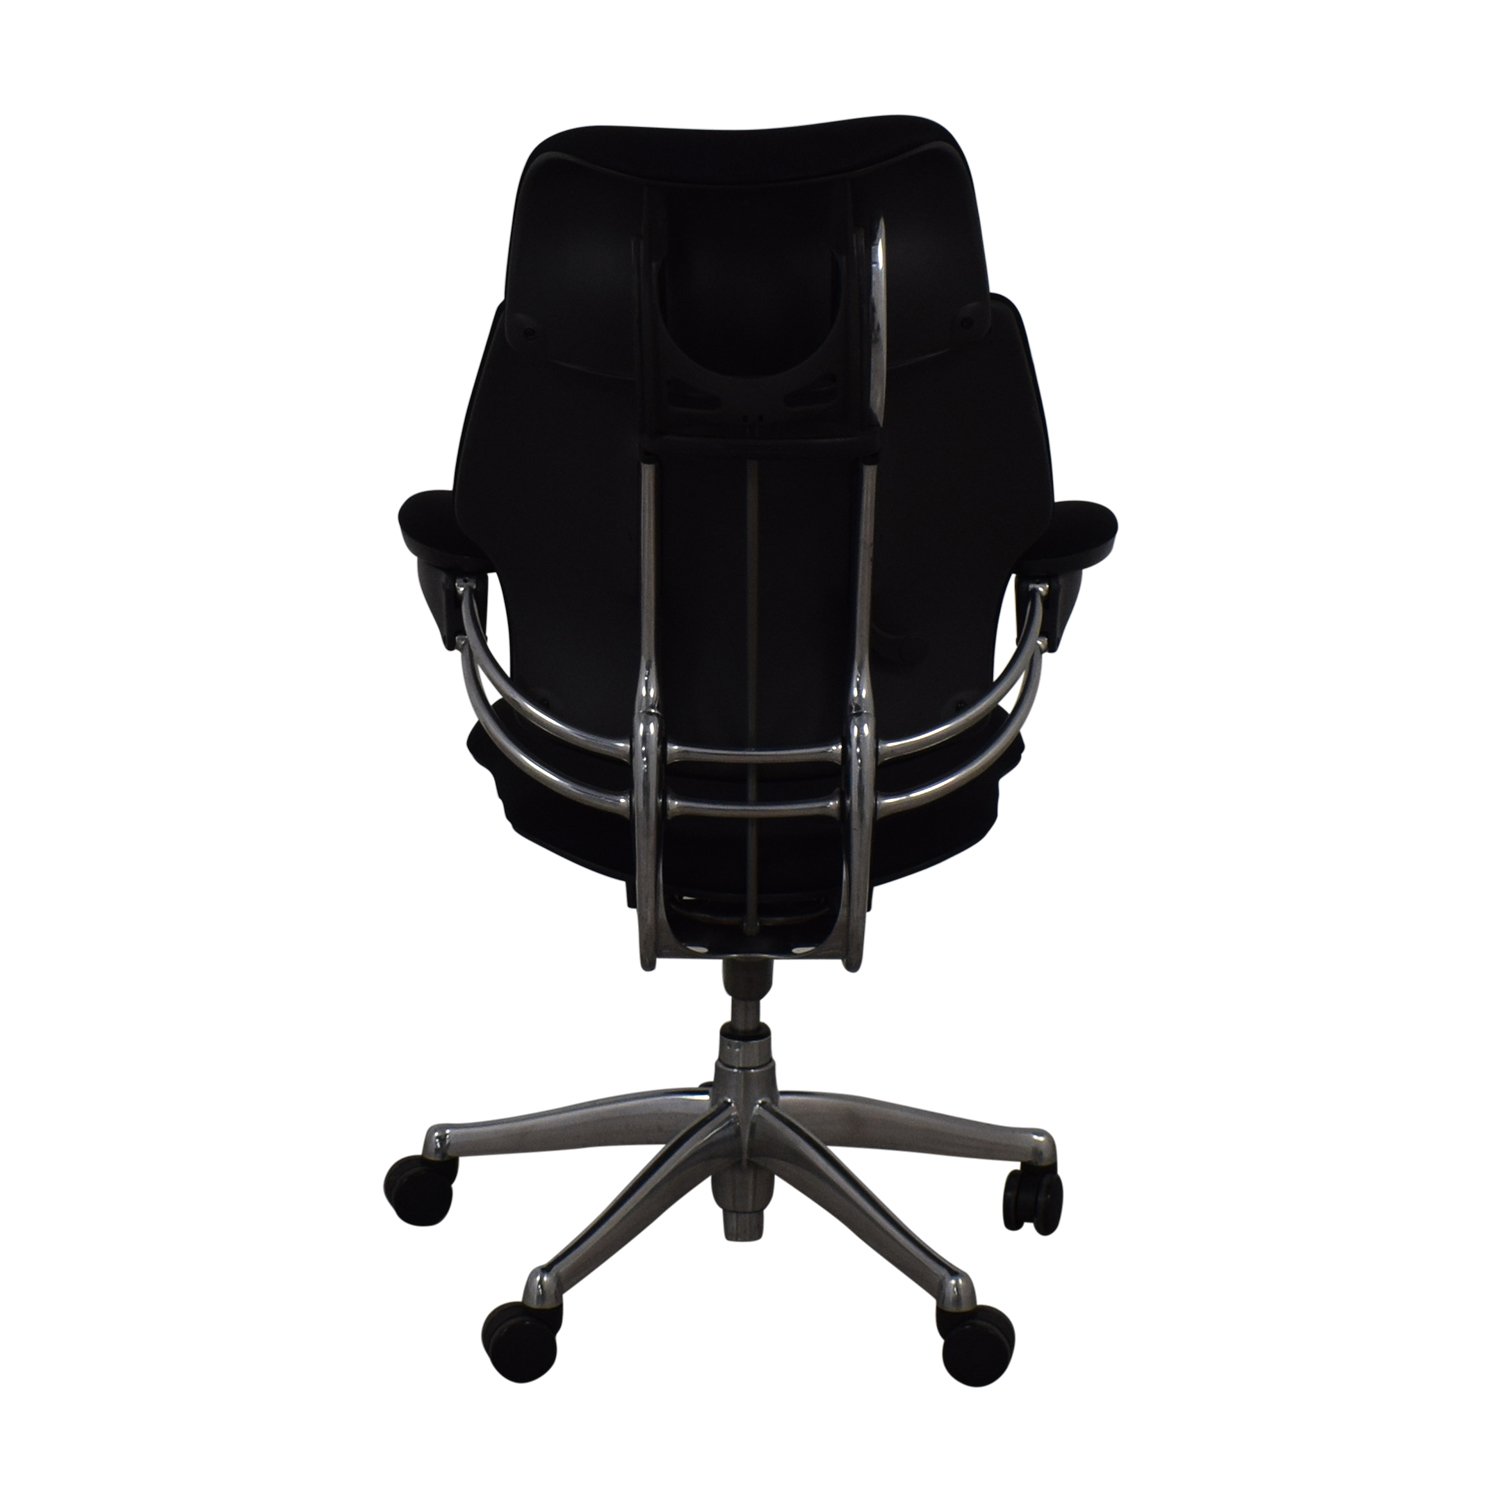 Humanscale Humanscale Desk Chair Chairs